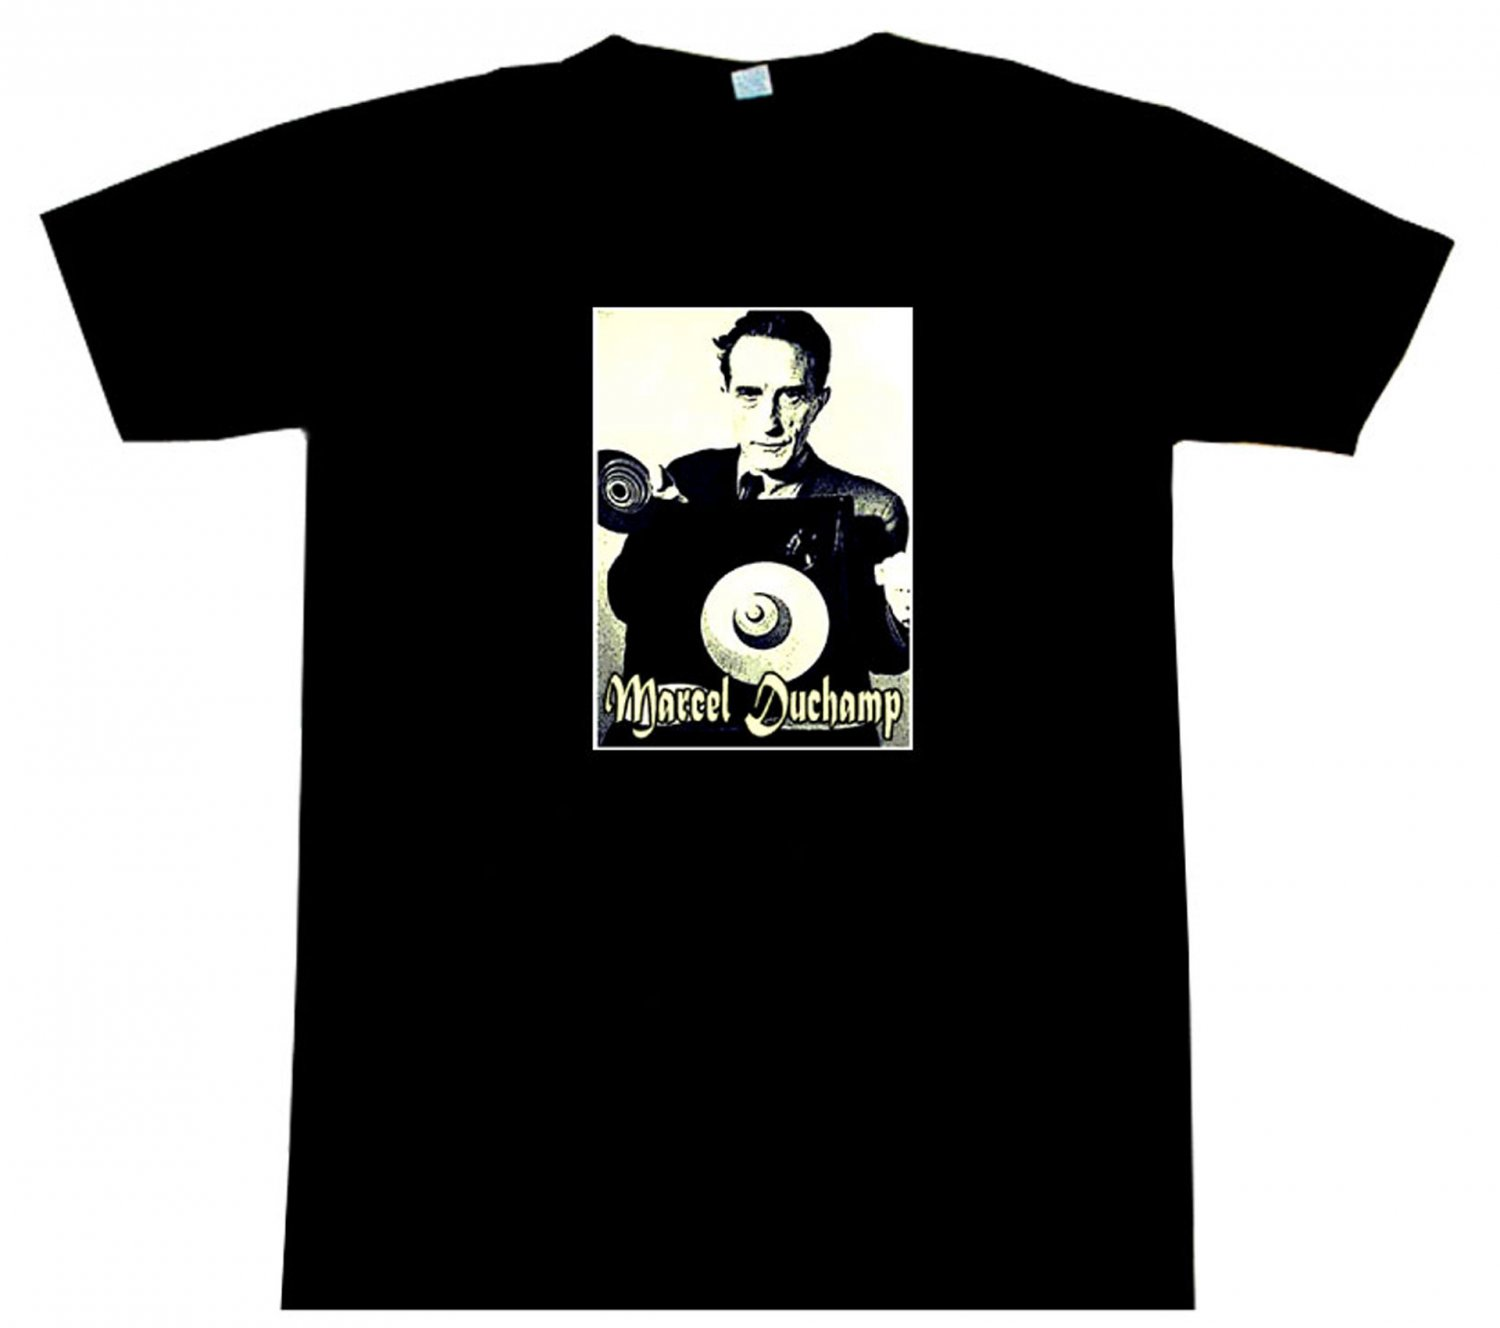 marcel duchamp t shirt beautiful. Black Bedroom Furniture Sets. Home Design Ideas